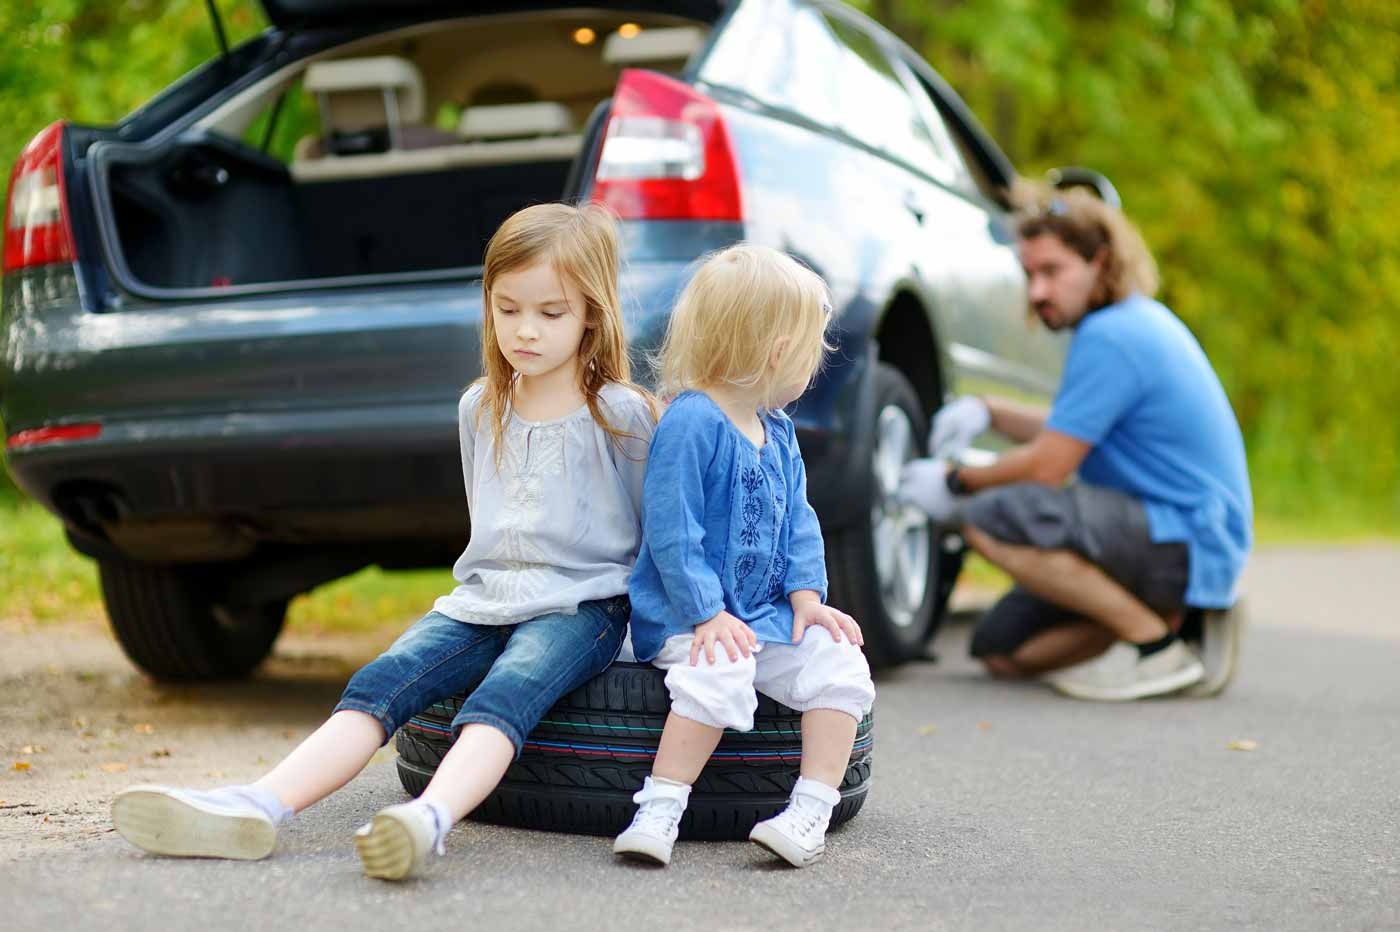 Father works on car on side of the road while two daughters sit sadly on tire